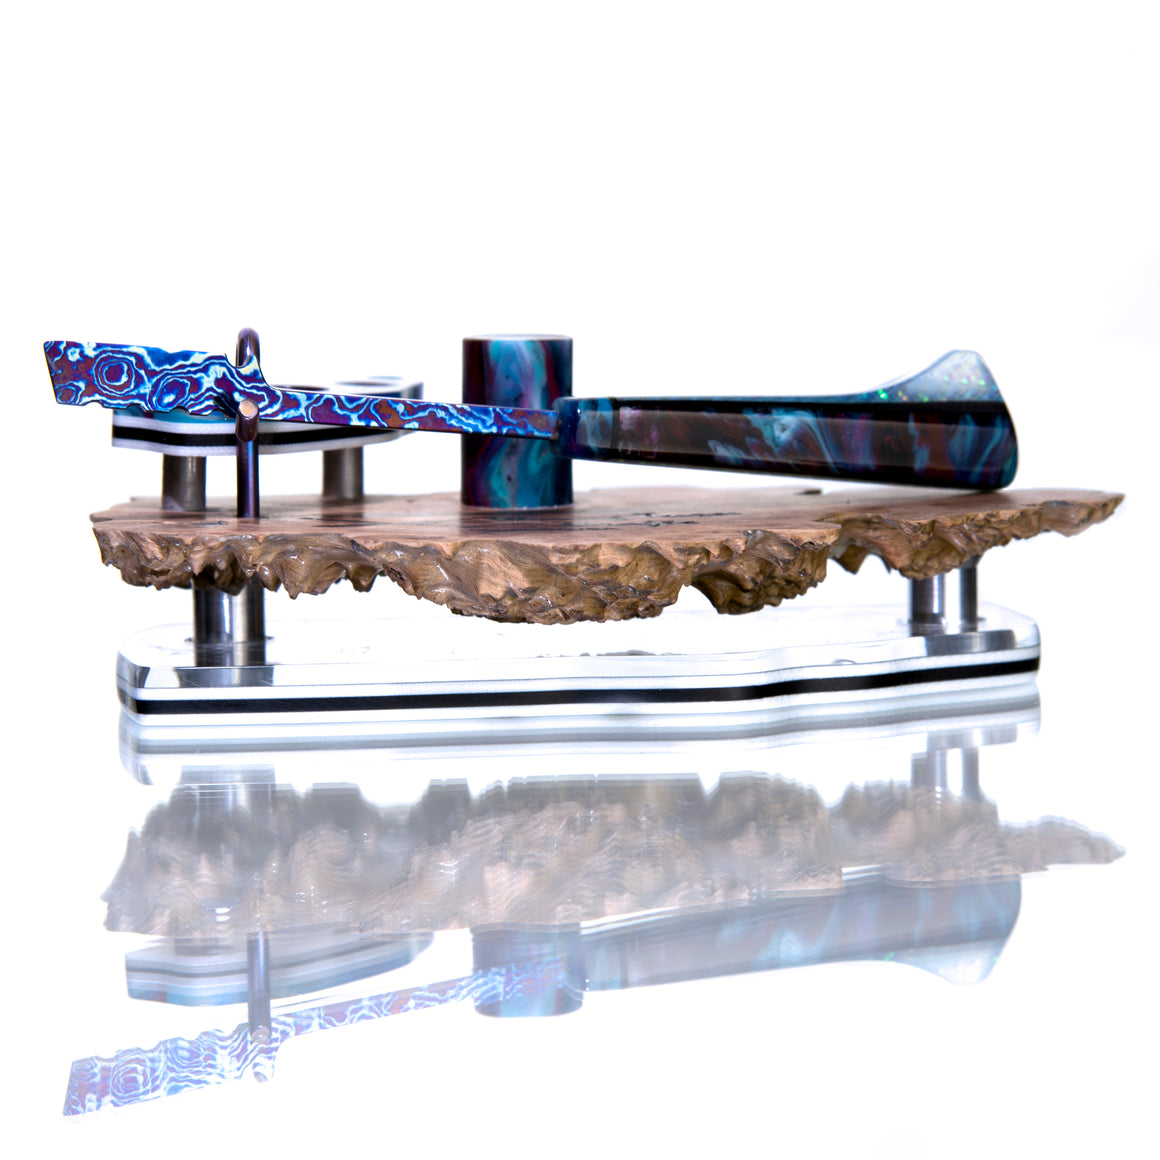 """Tactical Spatula"" Timascus™️ Dab Tool w/ LED-lit Burl Display Stand - Graffiti Resin/Pearl Dichro"